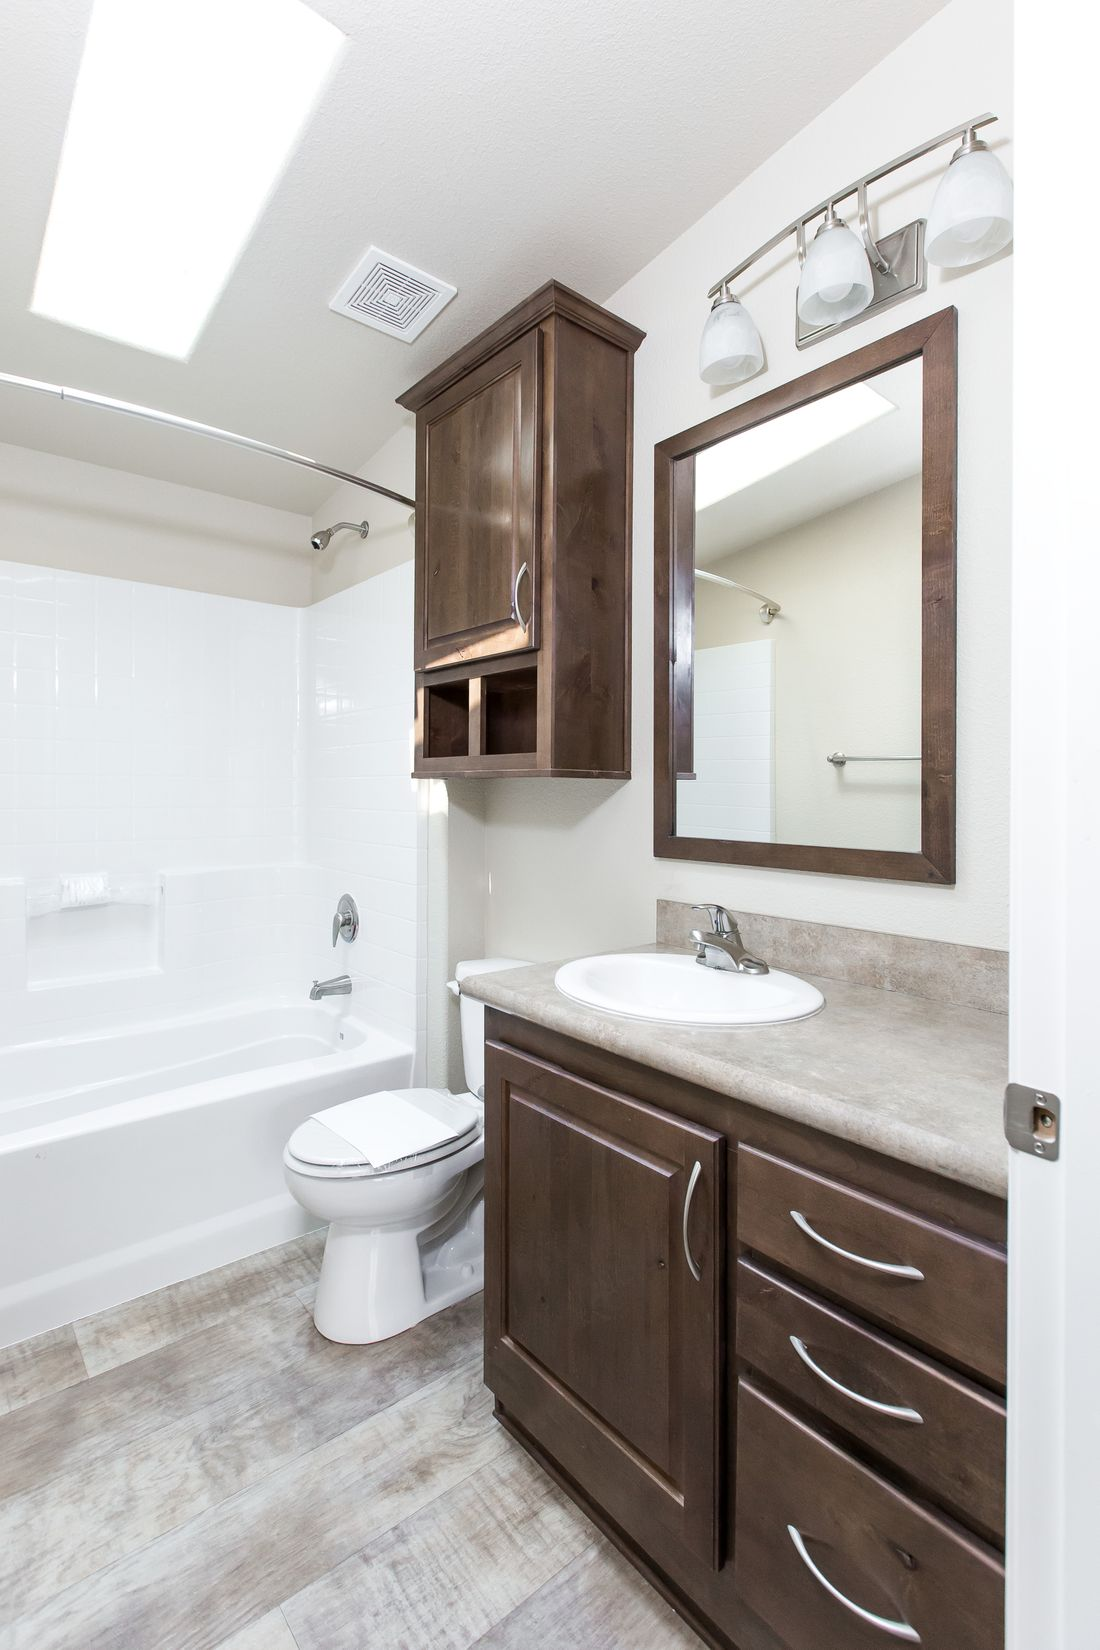 The 2860 MARLETTE SPECIAL Guest Bathroom. This Manufactured Mobile Home features 3 bedrooms and 2 baths.